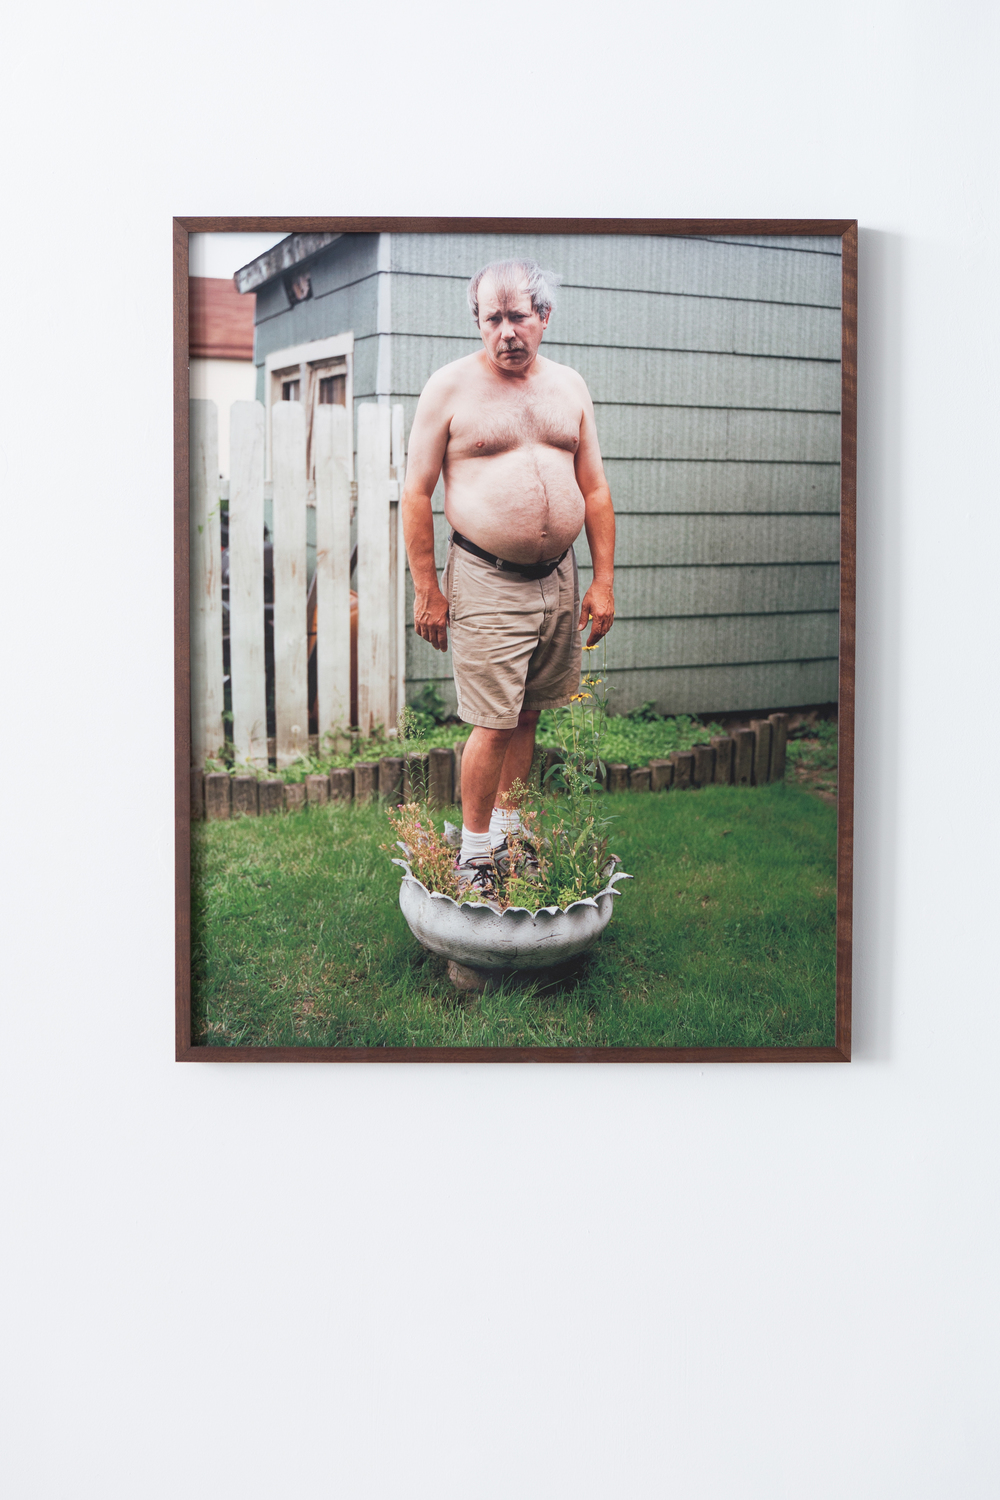 My Dad Standing in the Flower Pot, 2009